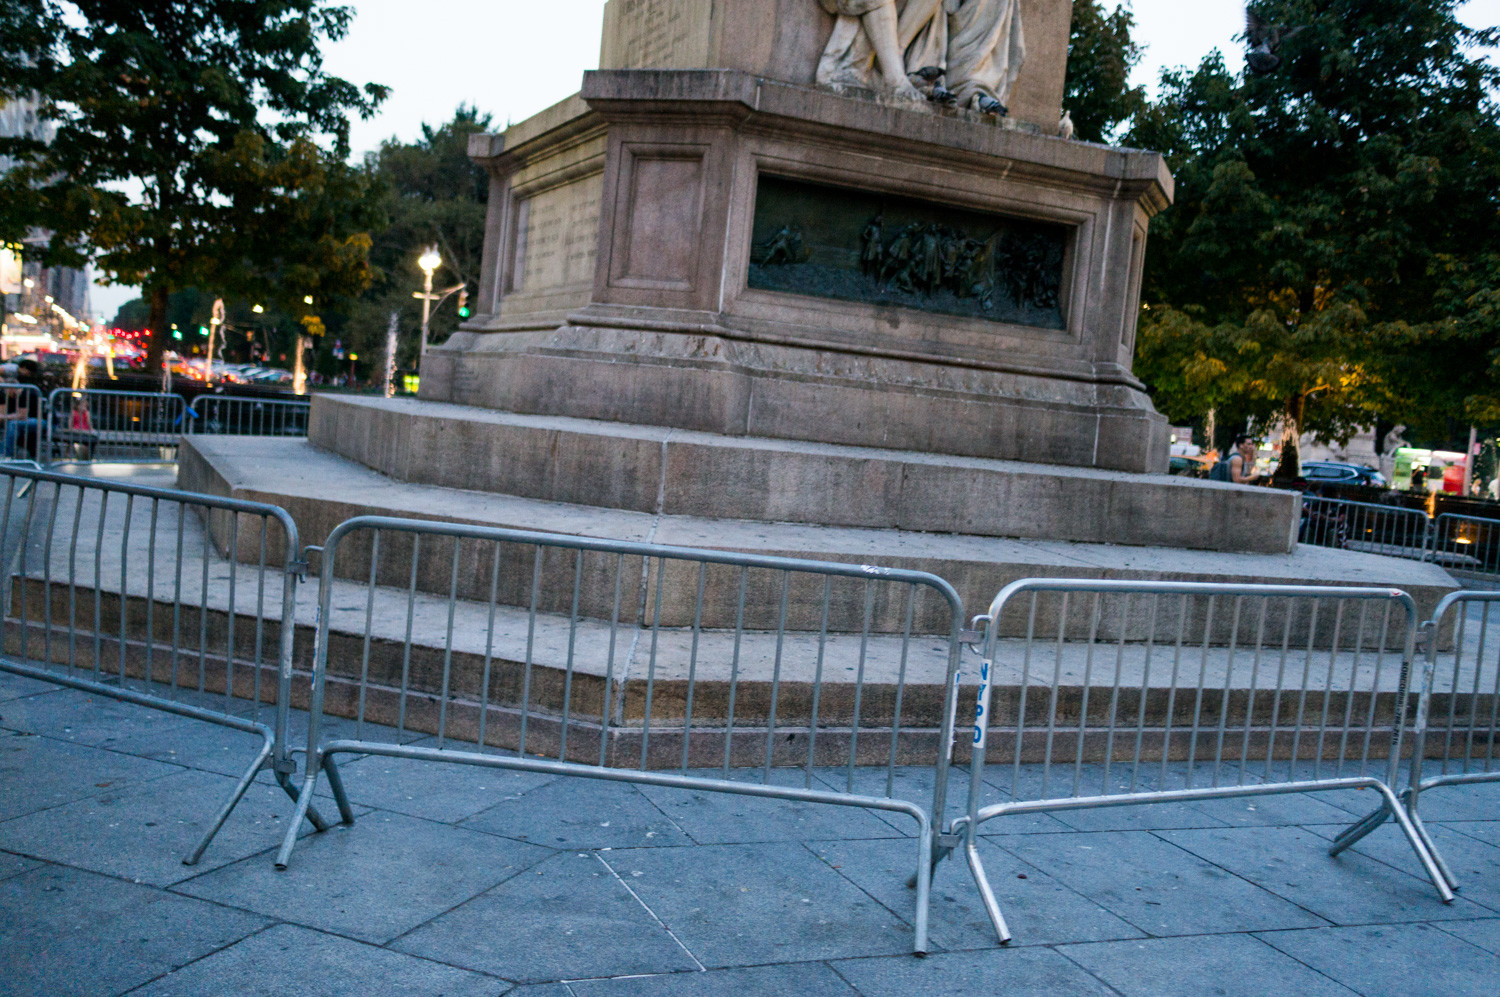 Barricades prevent people from accessing the base of the statue of Christopher Columbus in Manhattan, a popular spot for taking a breather.